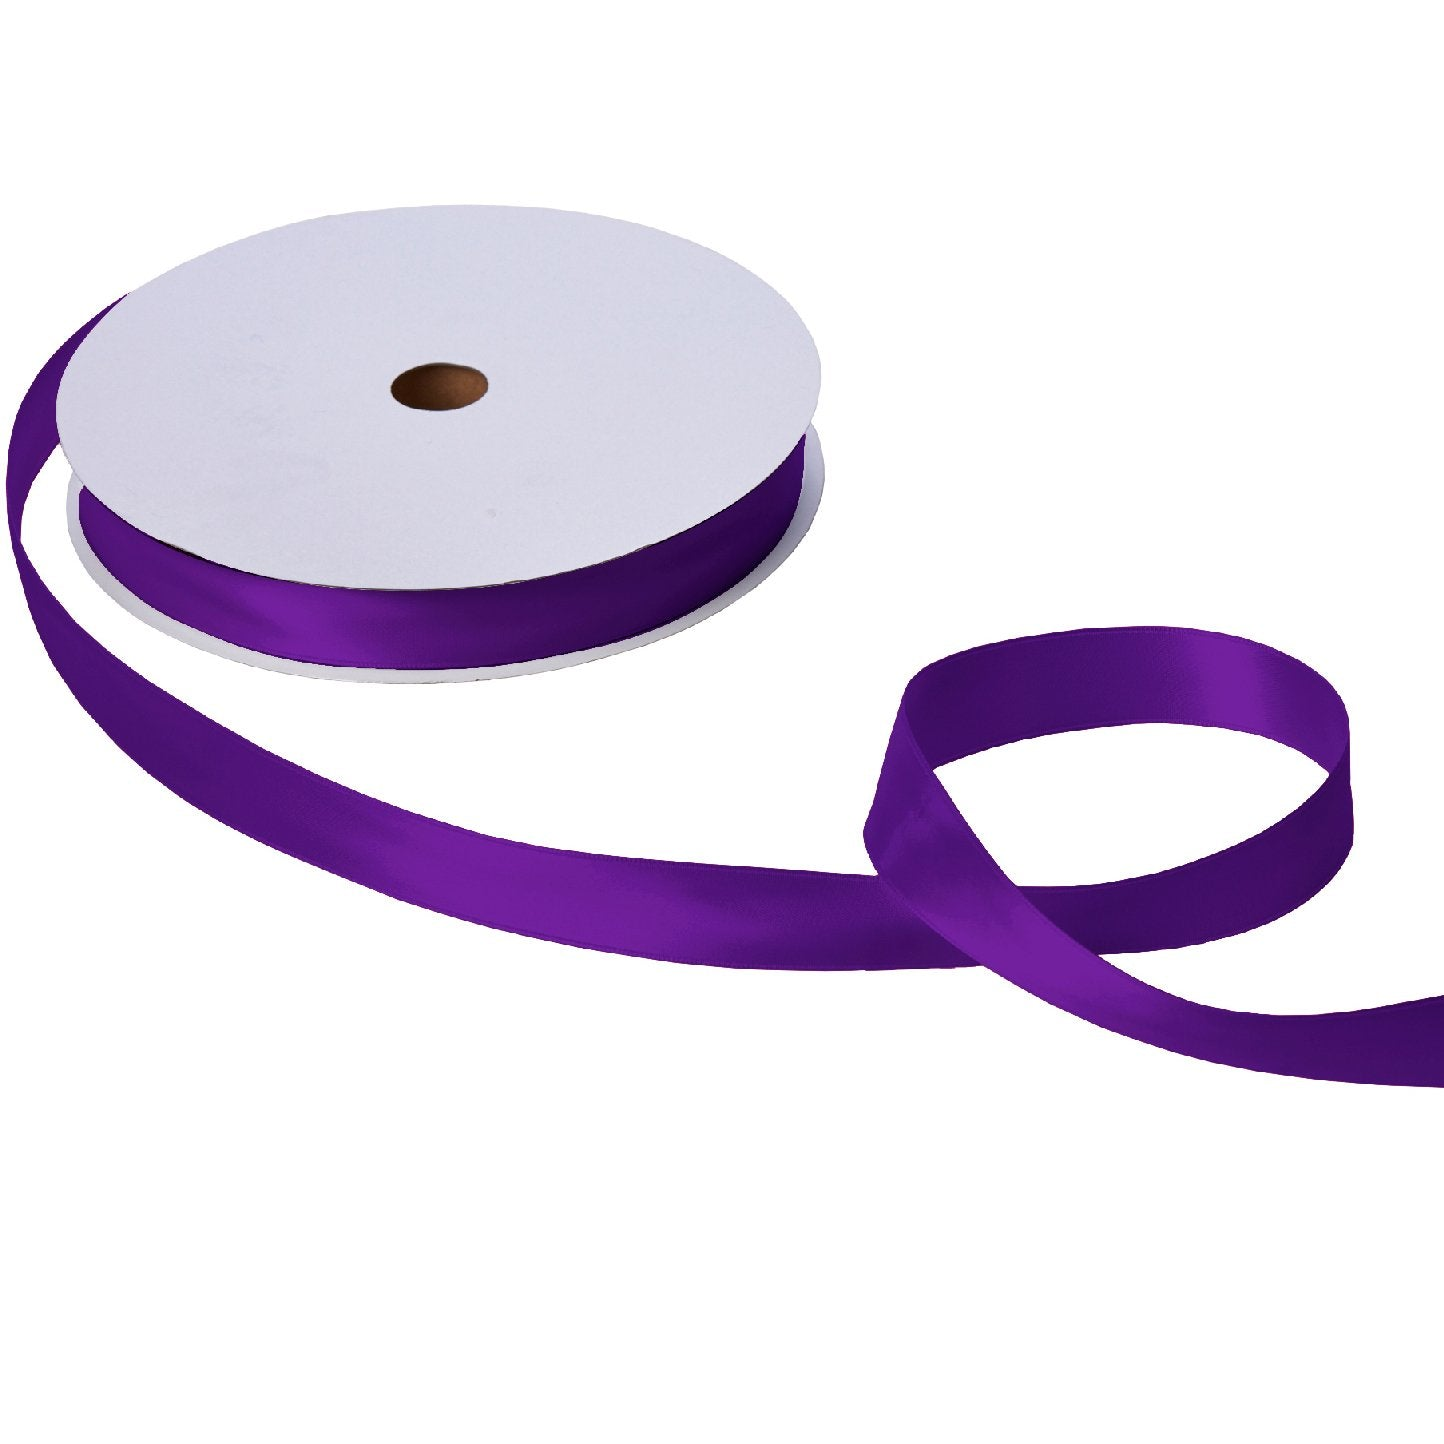 "Jillson & Roberts Double-Faced Satin Ribbon, 1"" Wide x 100 Yards, Purple"